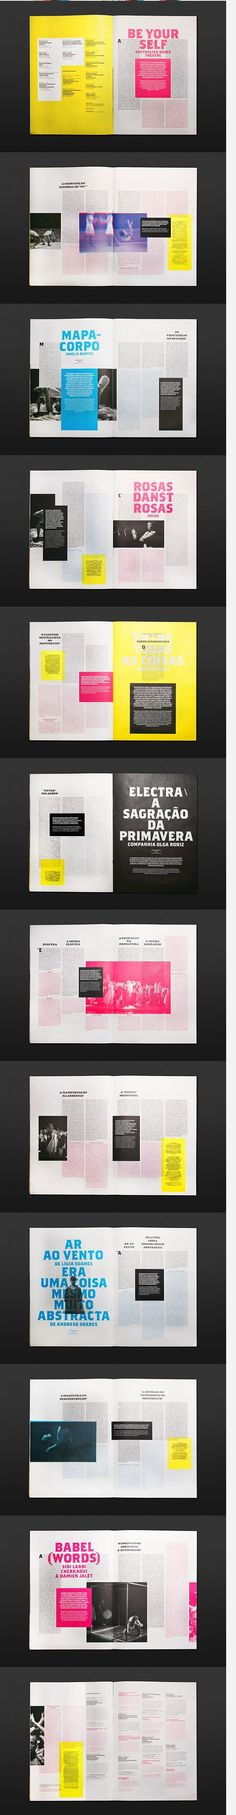 Editorial Design Inspiration | Abduzeedo Design Inspiration, color, layout